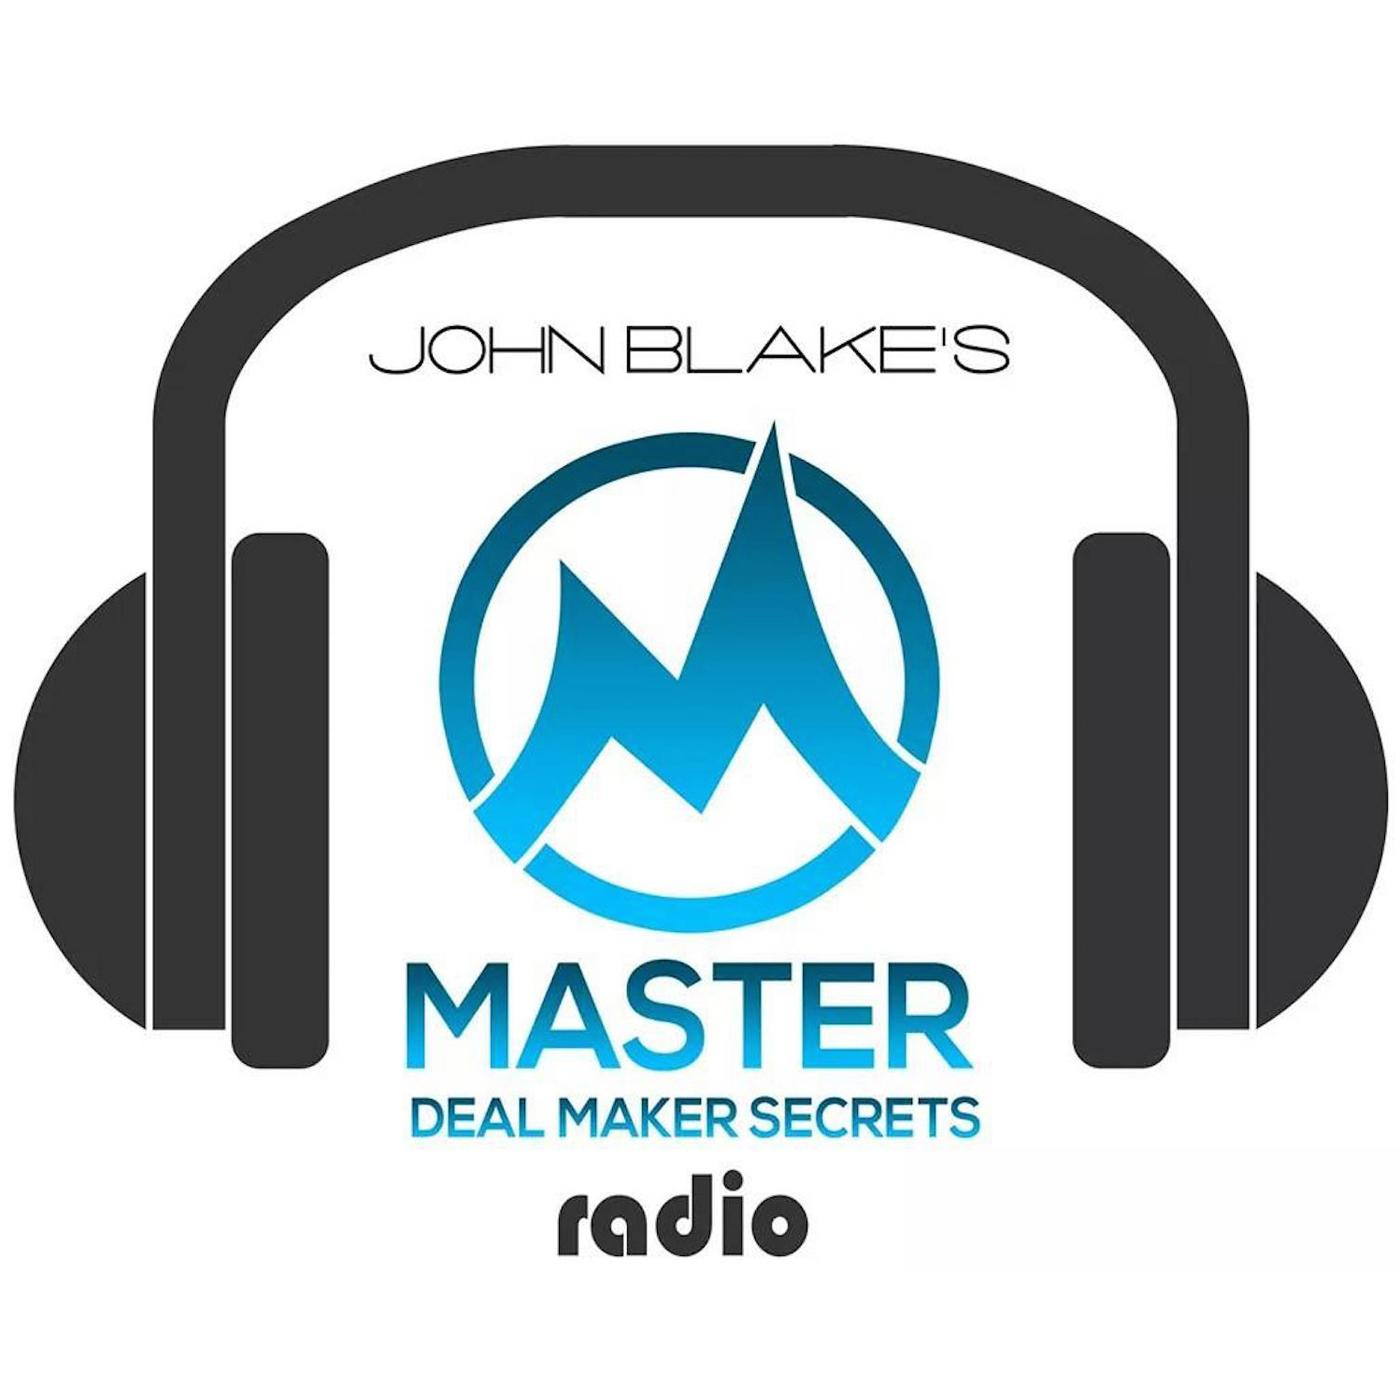 Master Deal Maker Secrets